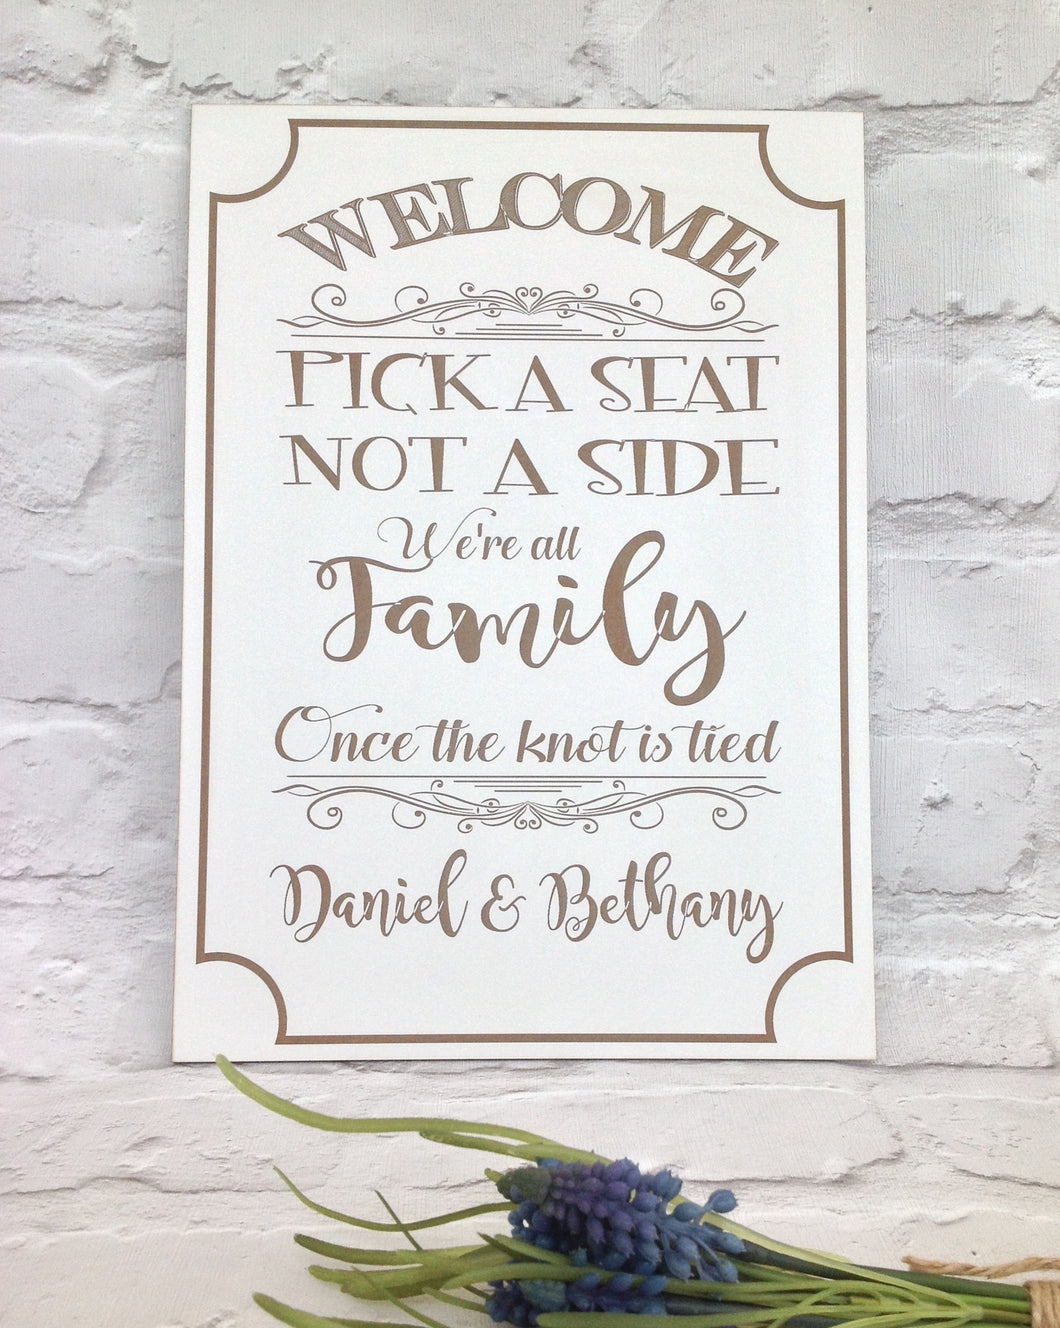 Pick a seat not a side personalised wedding sign plaque - Fred And Bo